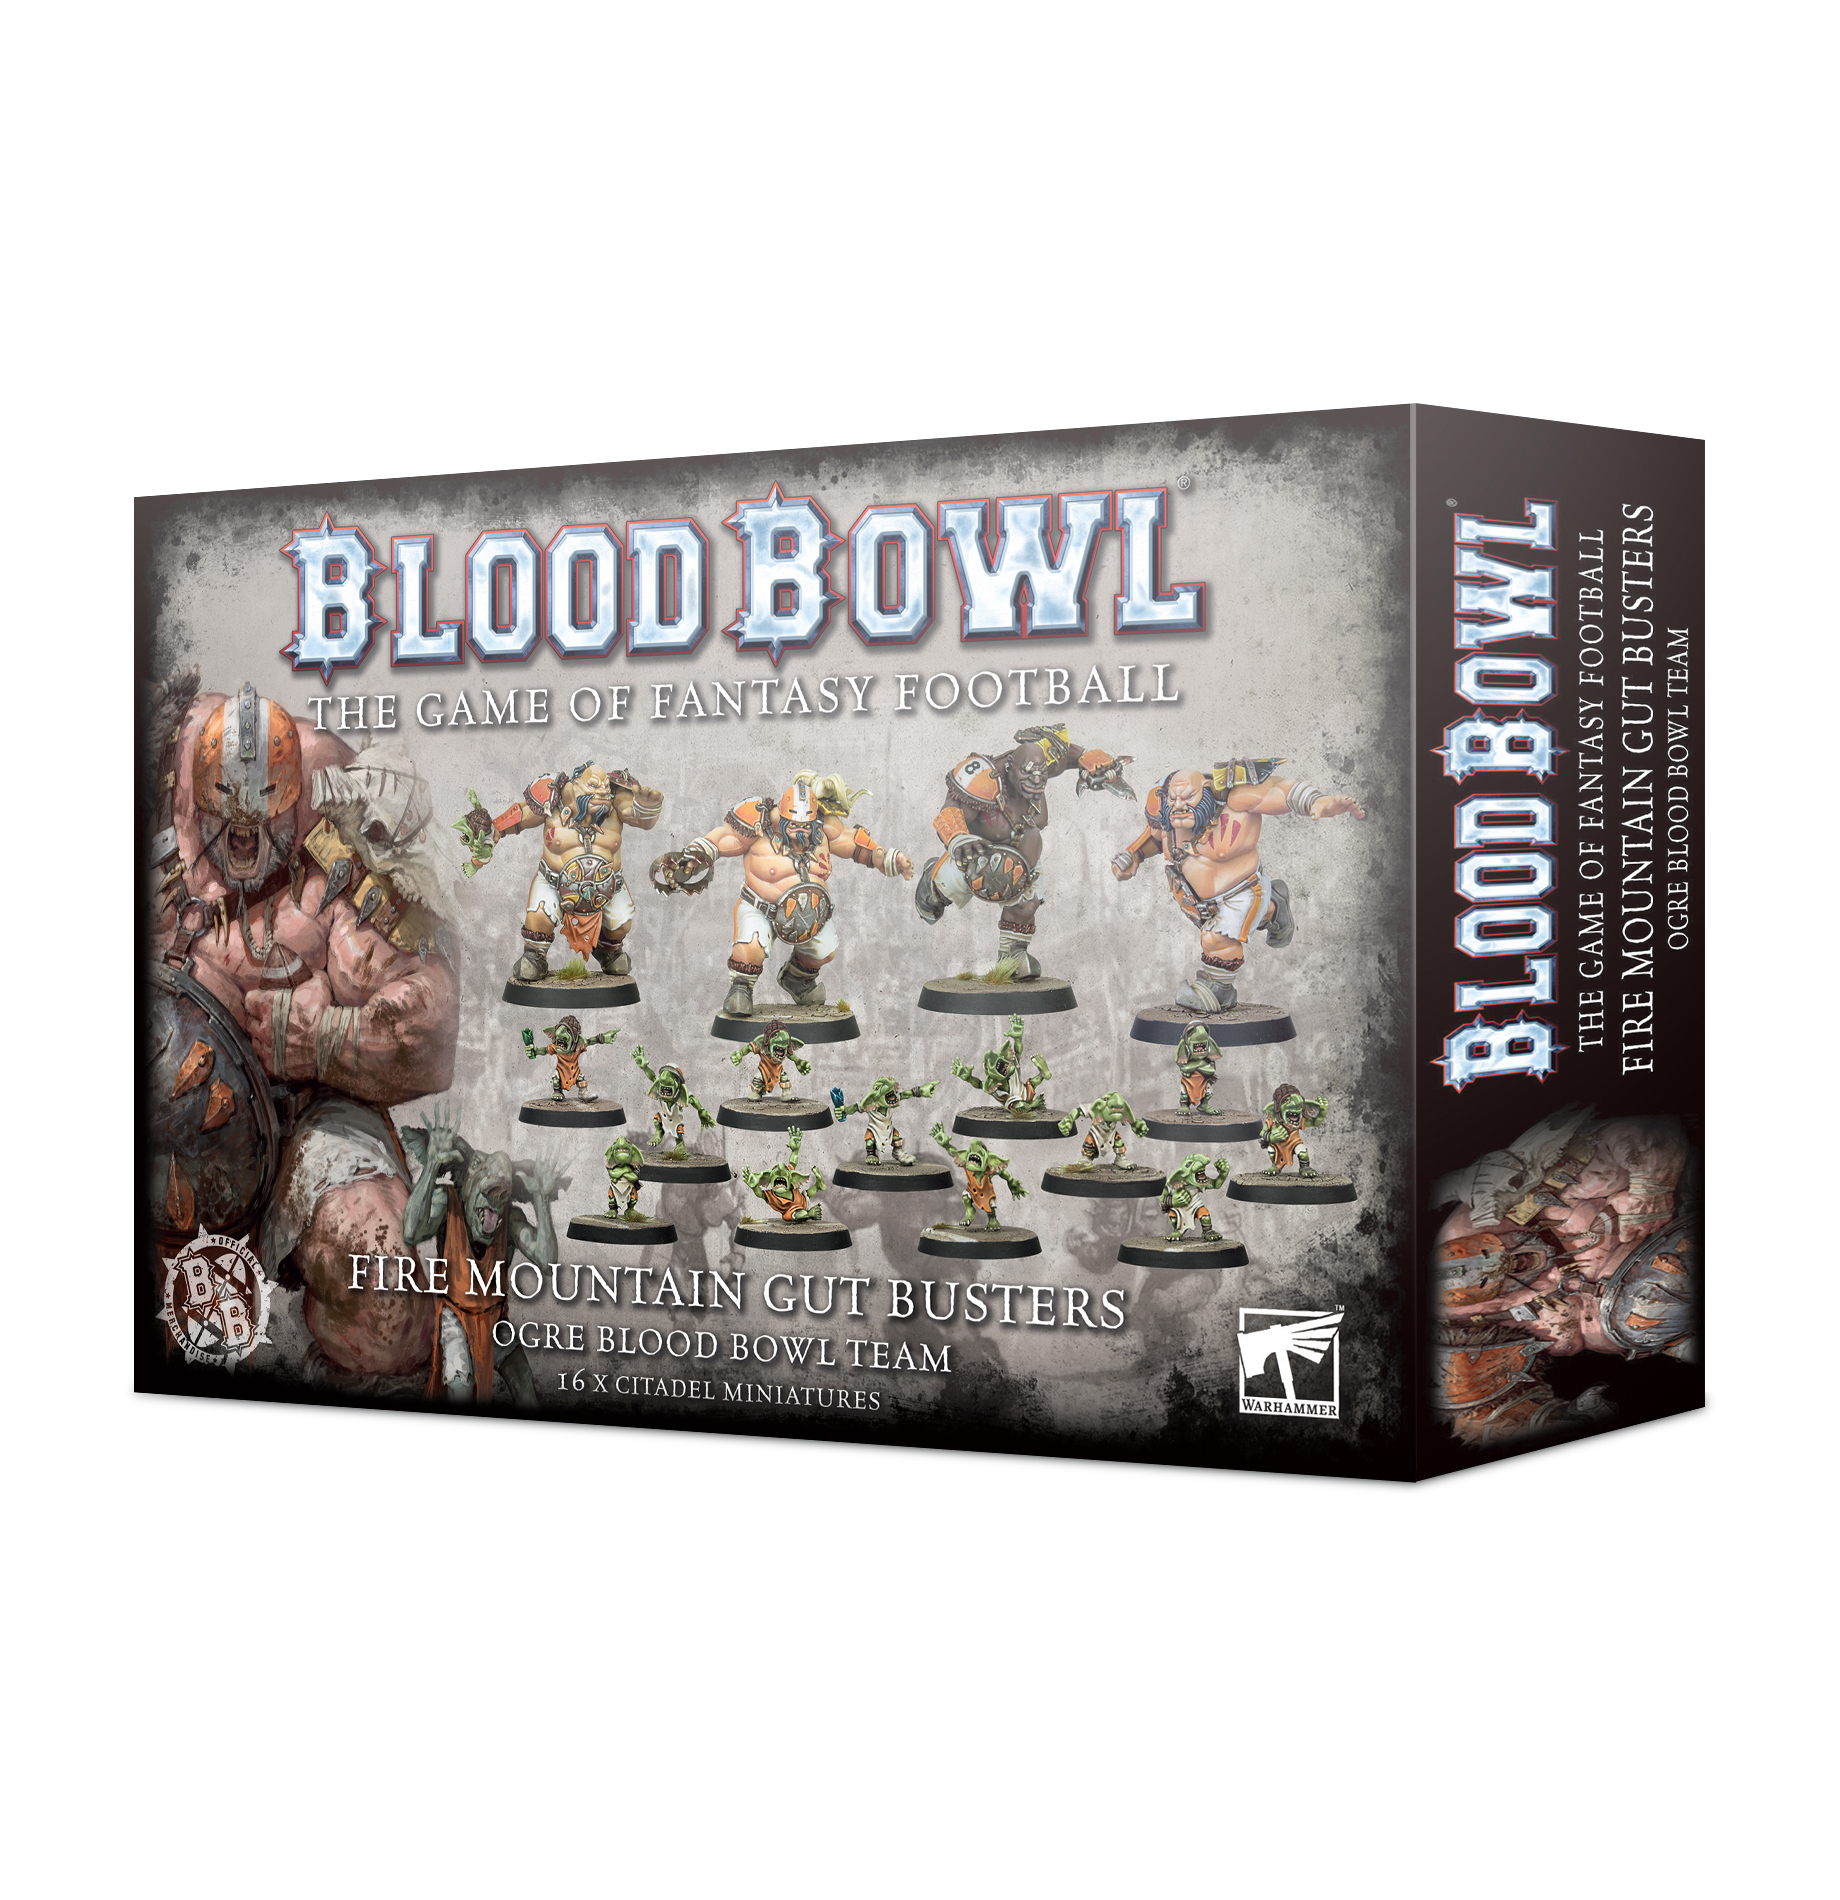 Fire Mountain Gut Busters, Bloodbowl